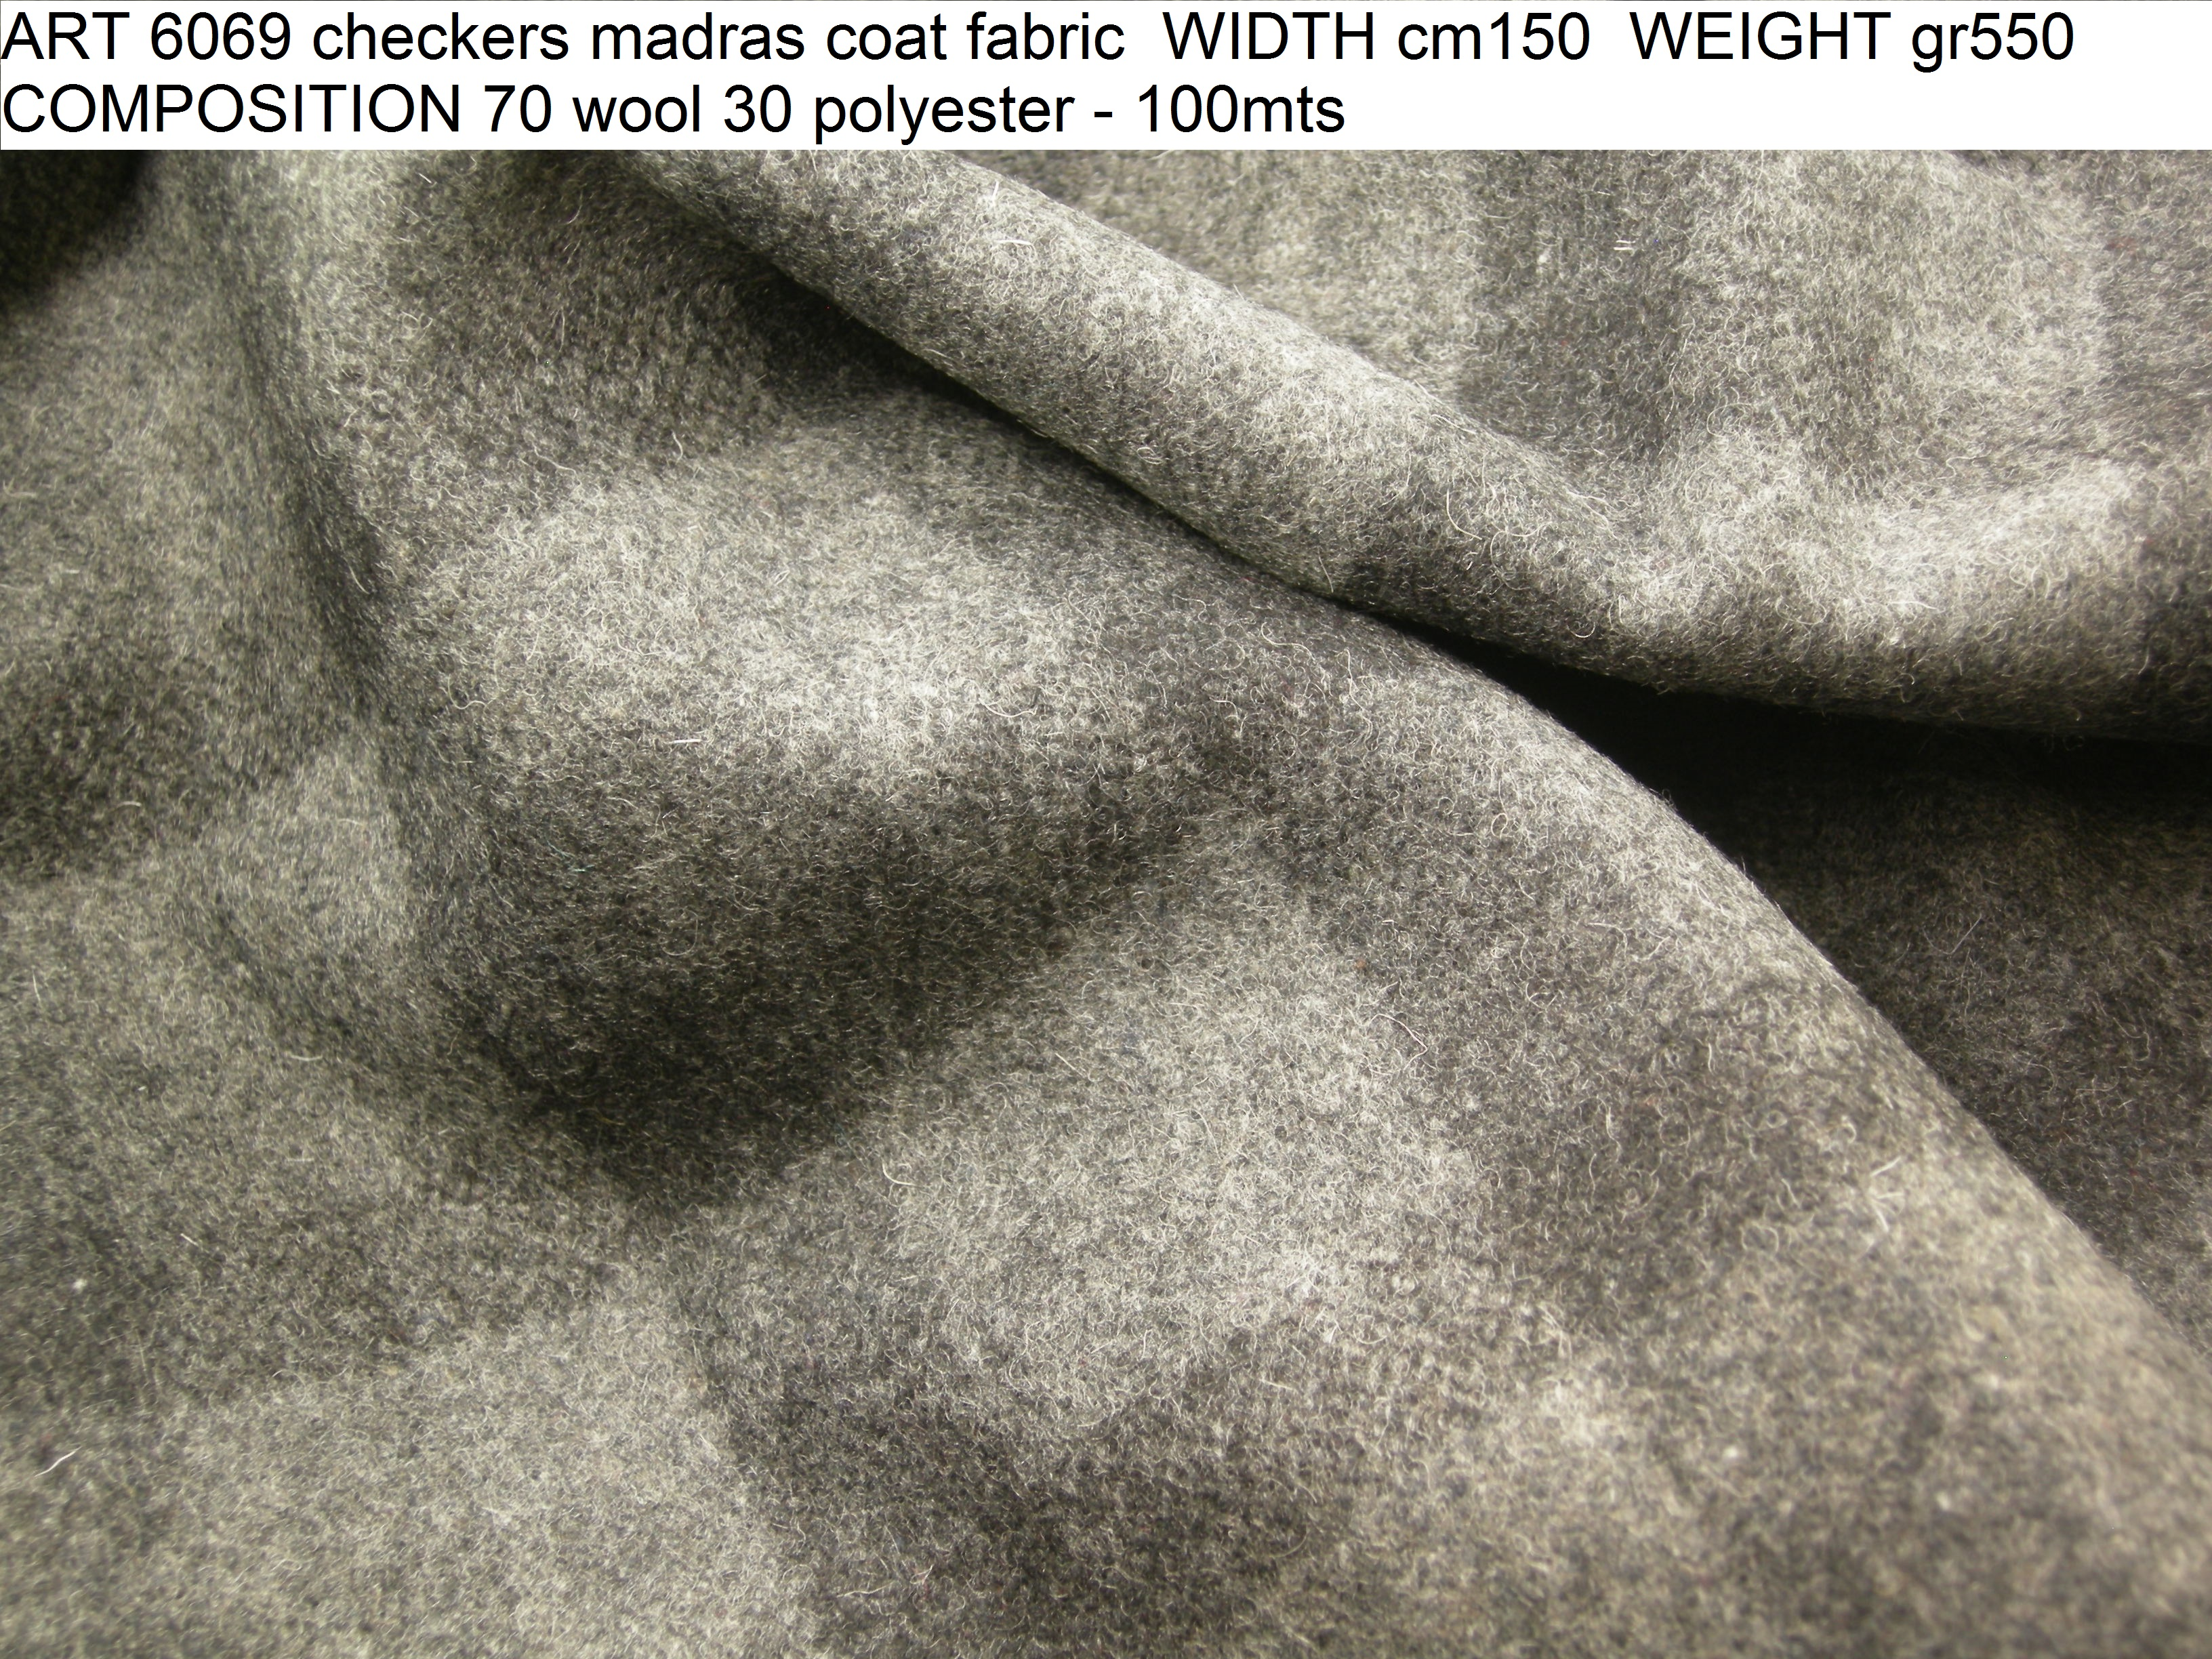 ART 6069 checkers madras coat fabric WIDTH cm150 WEIGHT gr550 COMPOSITION 70 wool 30 polyester - 100mts